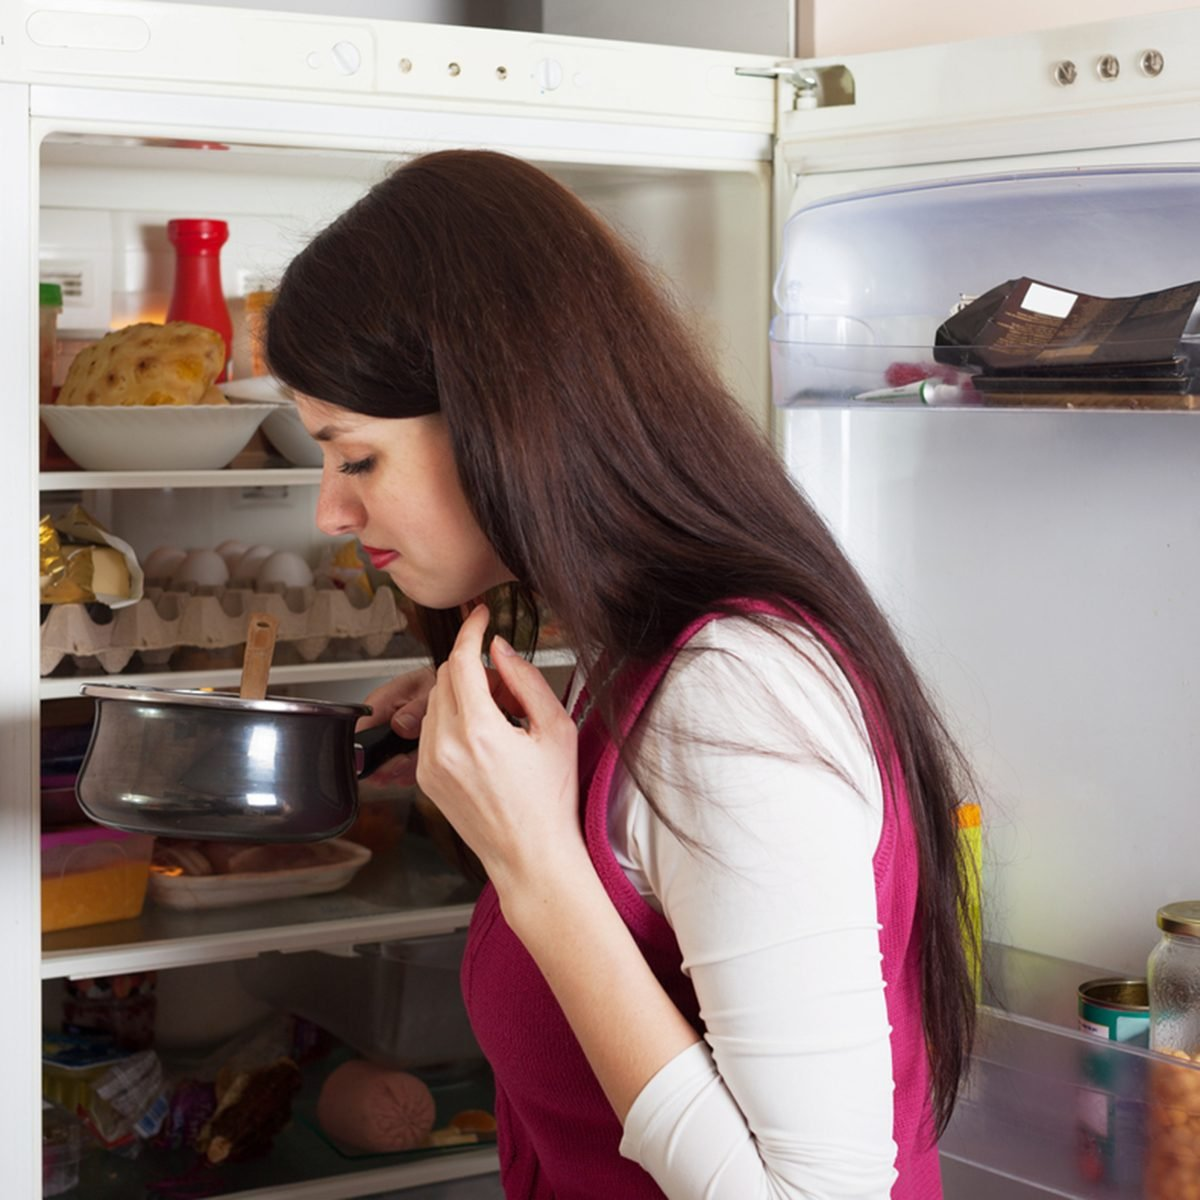 Brunnette woman holding foul food near refrigerator at home; Shutterstock ID 215612881; Job (TFH, TOH, RD, BNB, CWM, CM): TOH